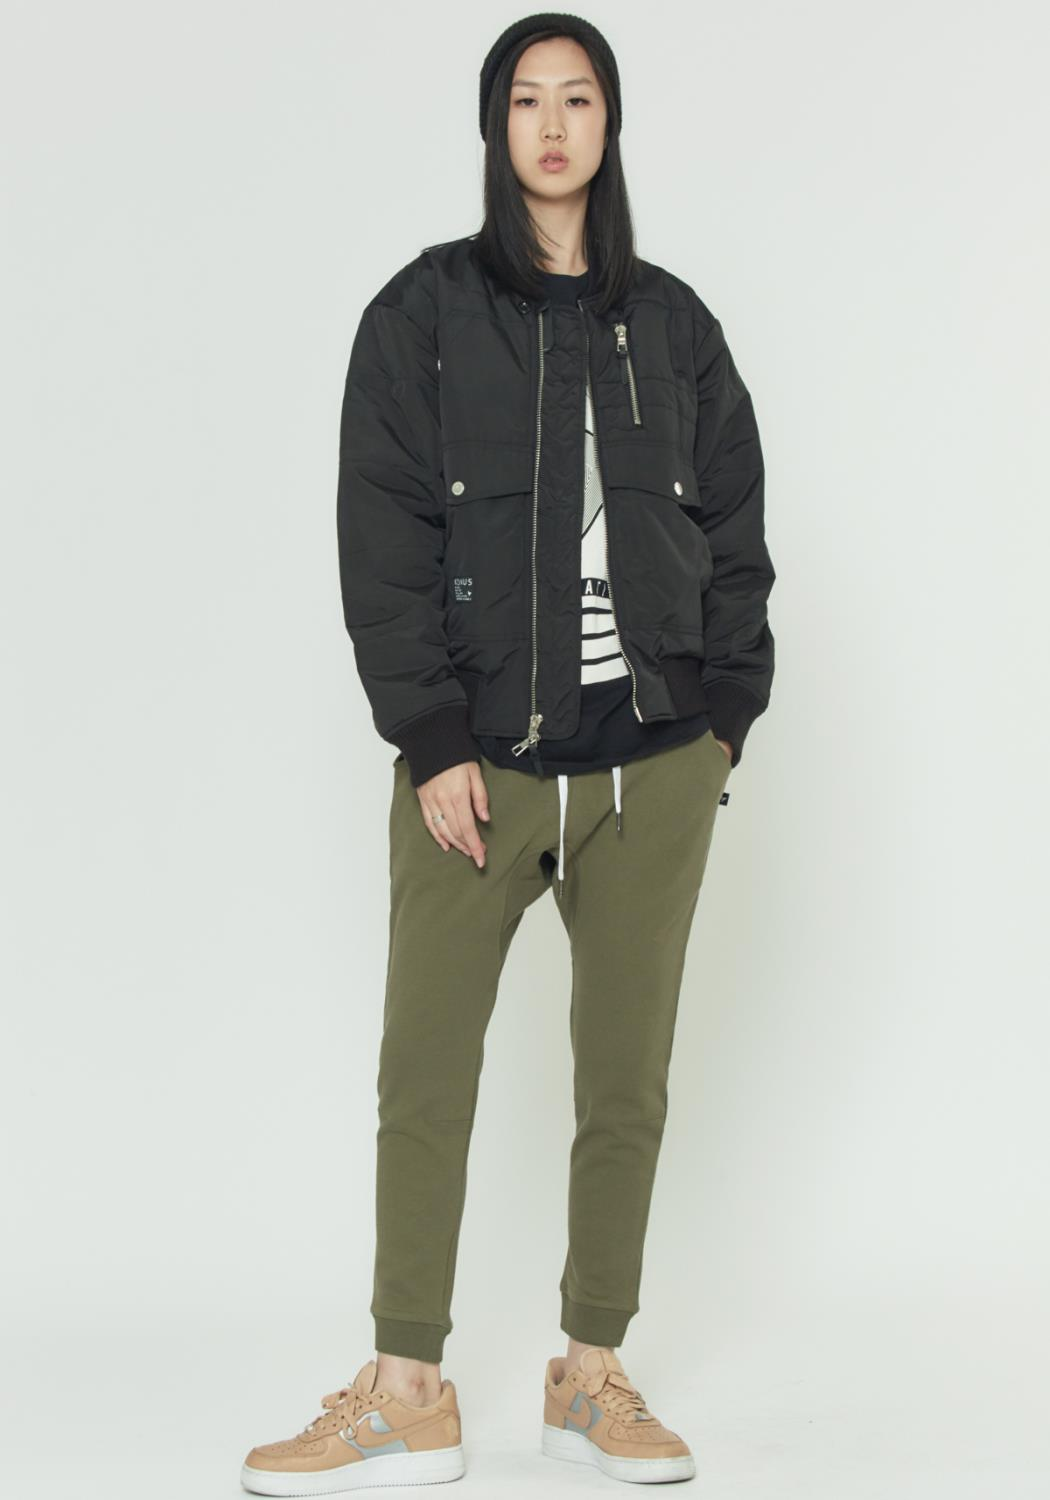 BOMBER JACKET WITH MULTIPLE POCKETS